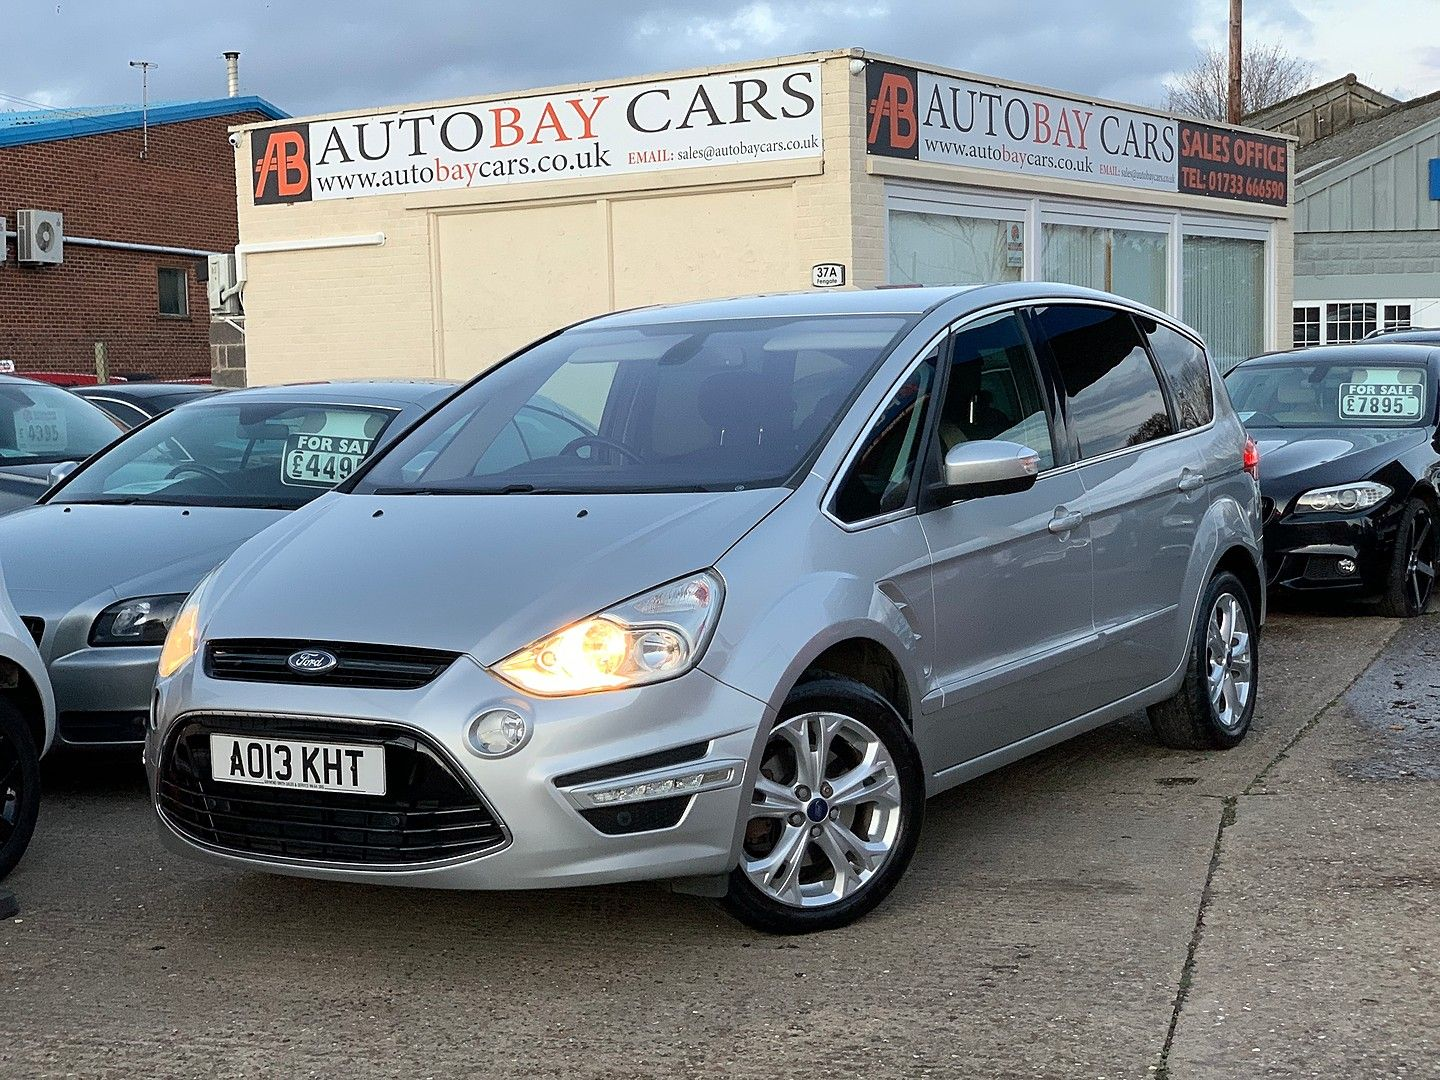 FORDS-MAXTitanium 2.0TDCI 163PS for sale